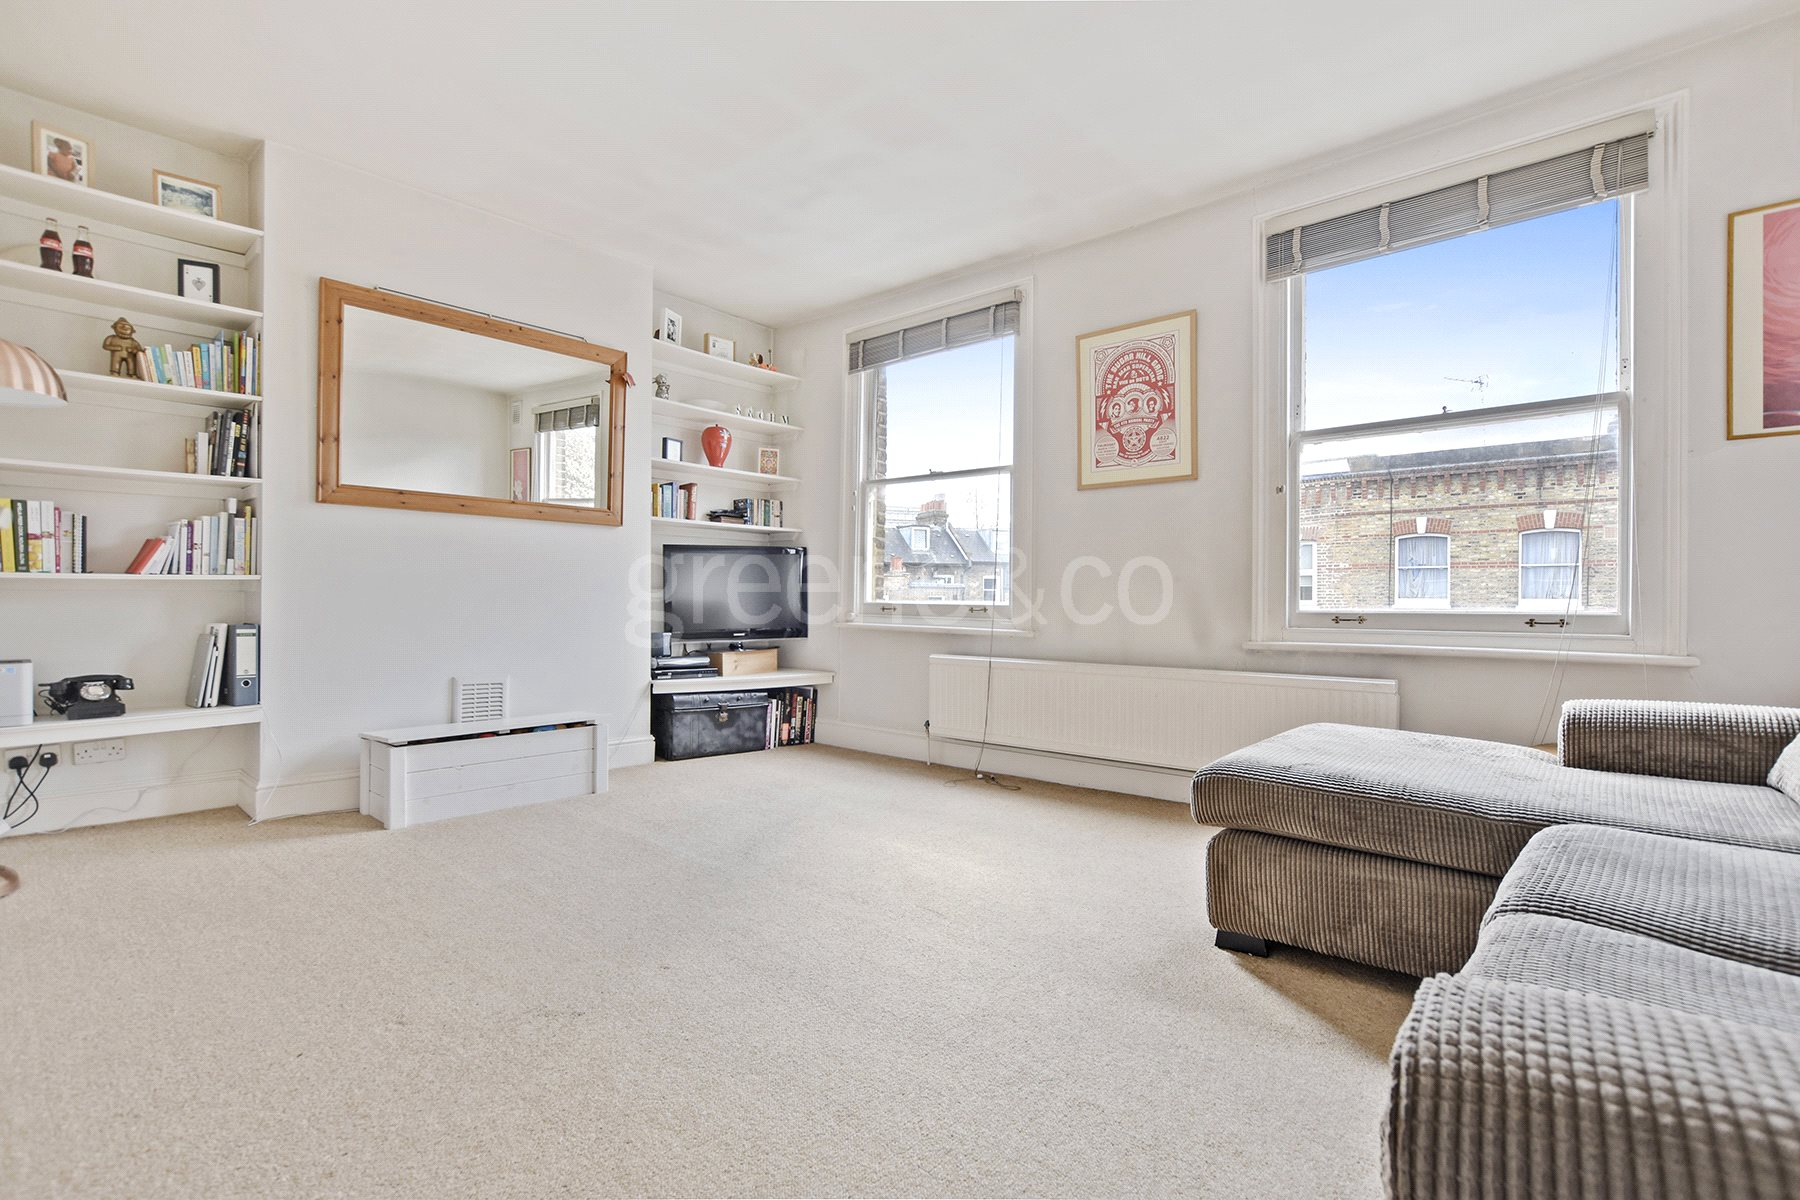 1 Bedroom Flat for sale in Saltram Crescent, Maida Vale, London, W9